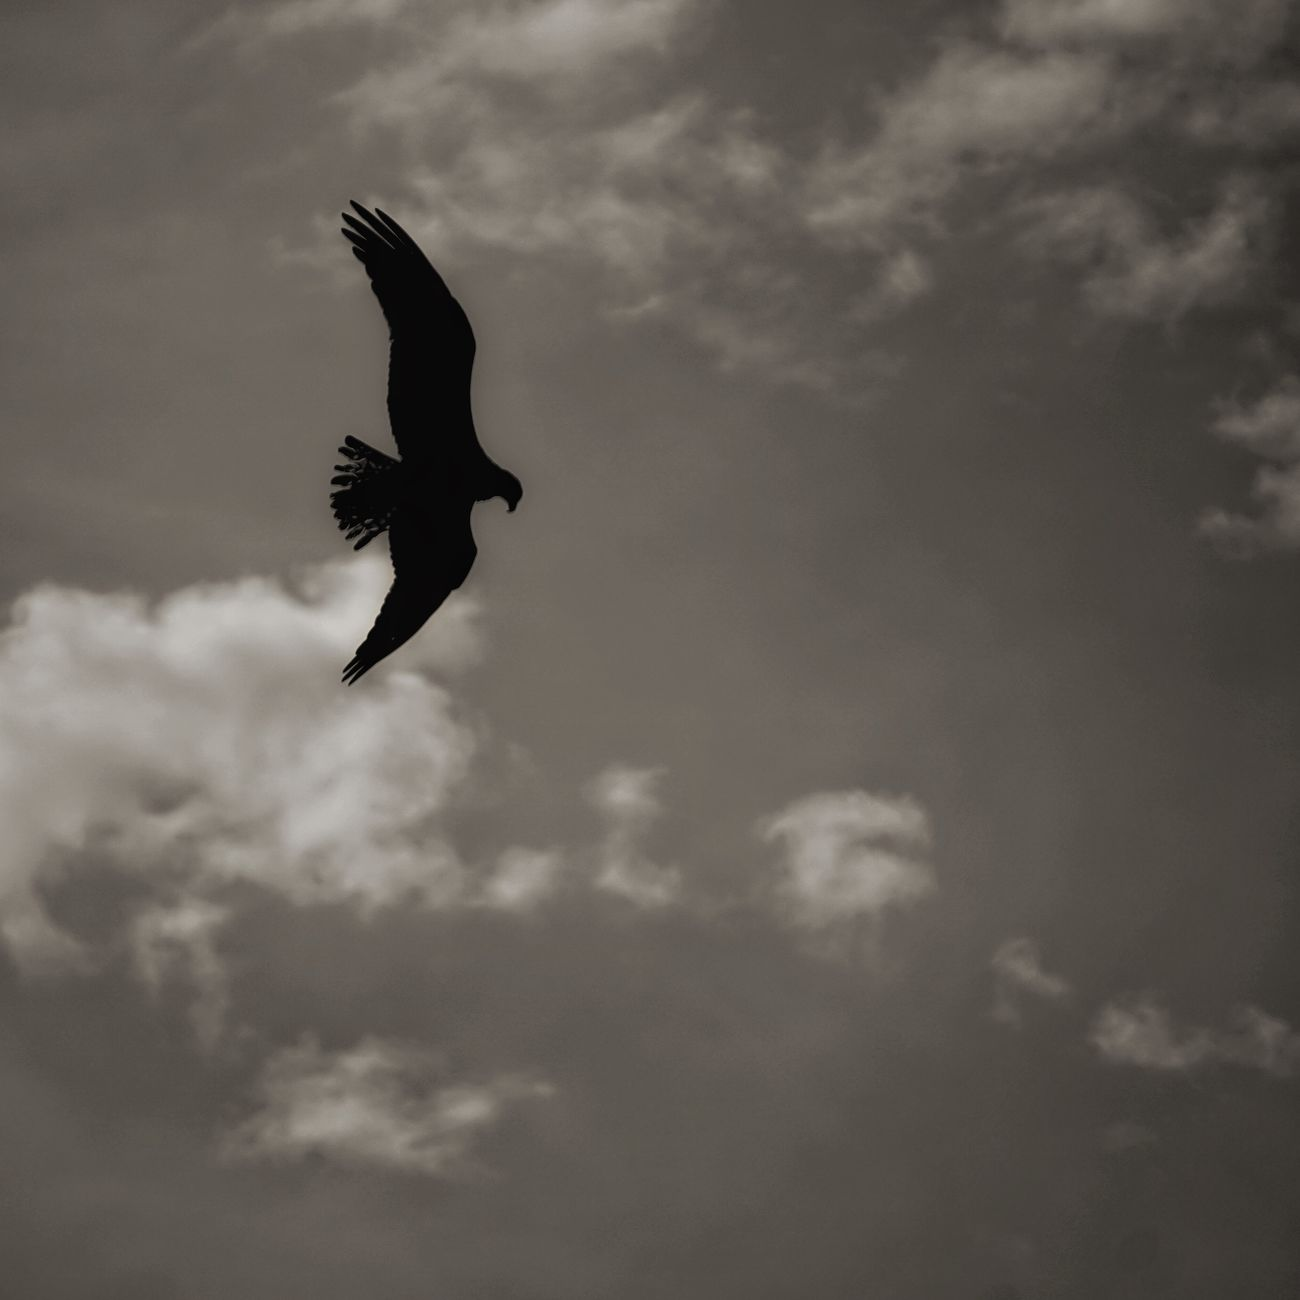 he hunt. Hawk Flying Flying High Bird Bird Photography Birdwatching The Great Outdoors - 2015 EyeEm Awards